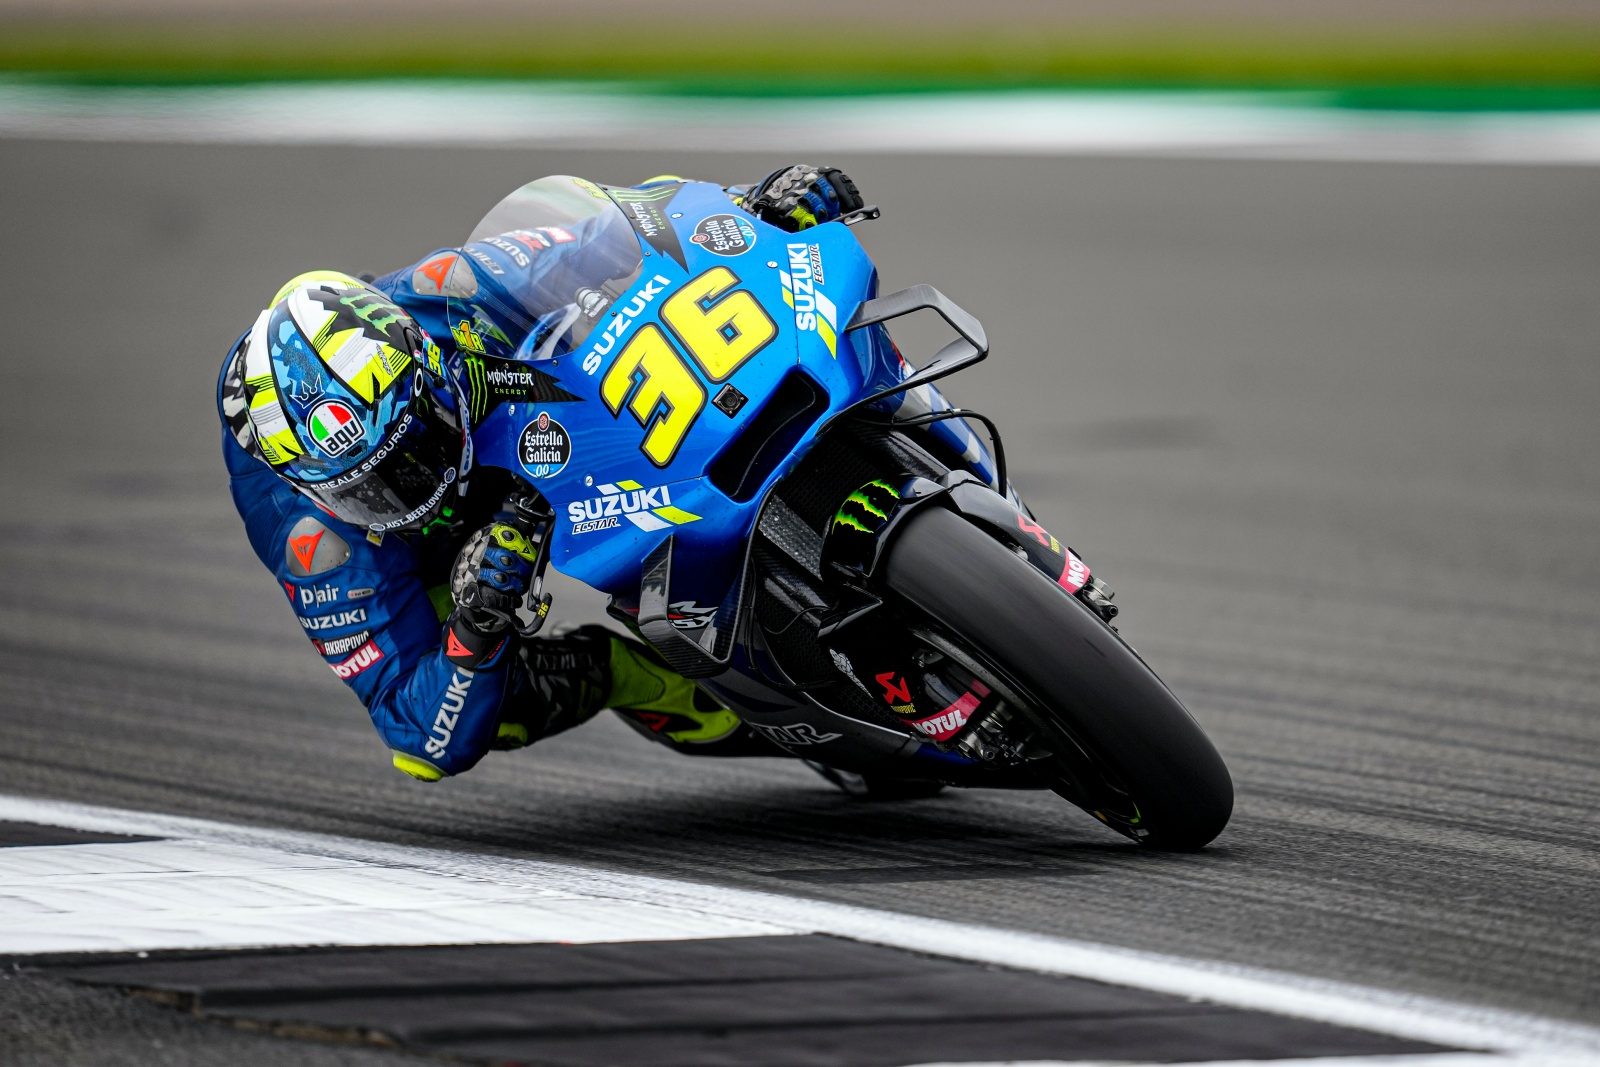 BUILDING THE FEELING ON DAY 1 AT THE BRITISH GP